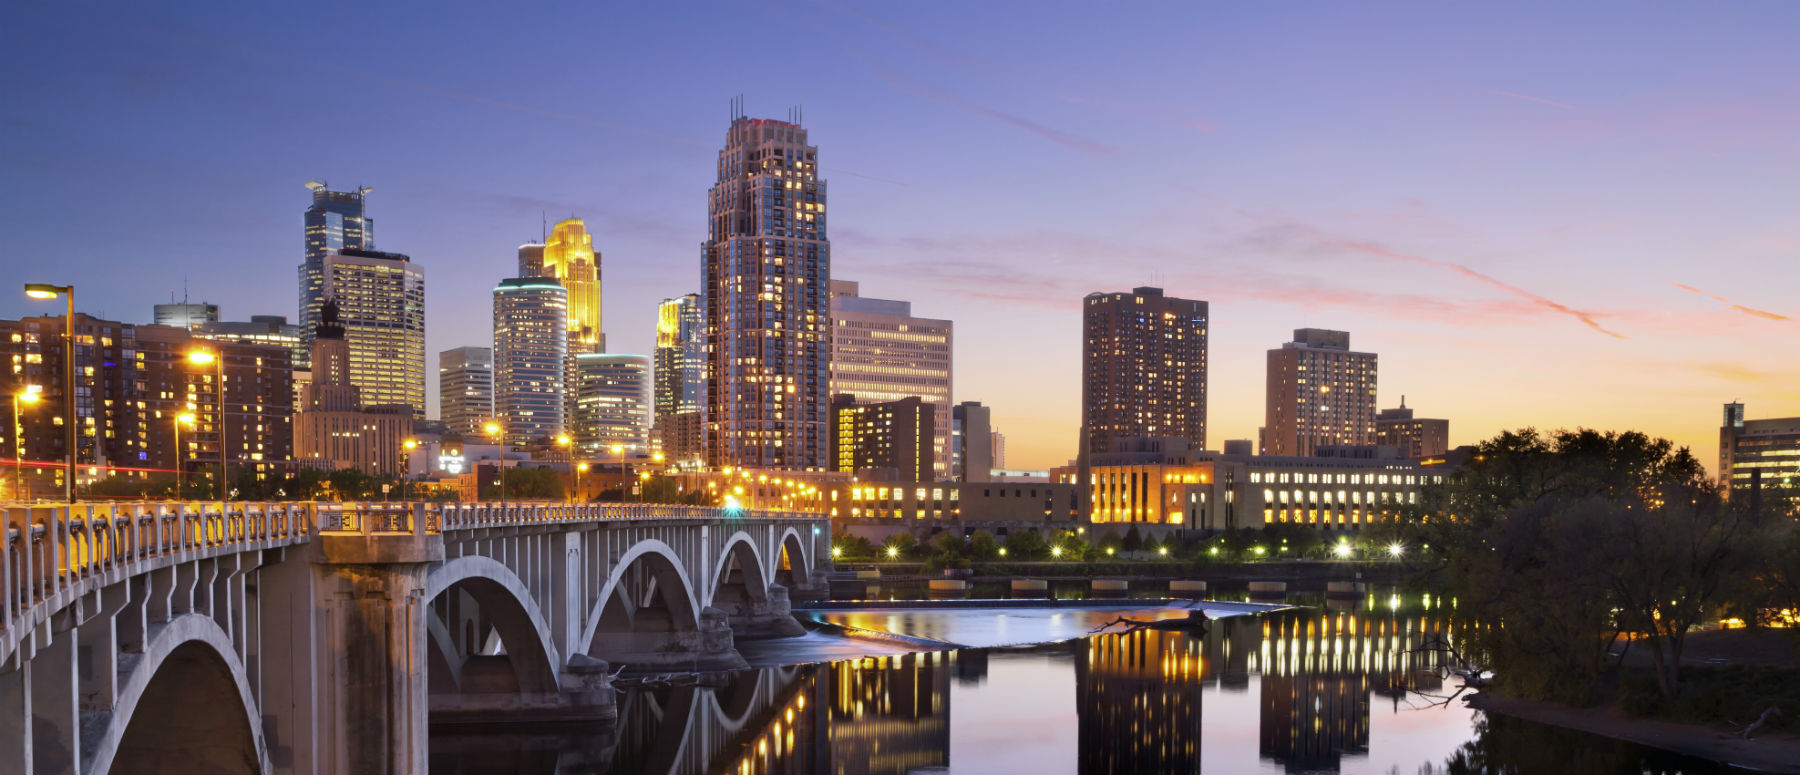 Software Guild has coding bootcamps in Minneapolis, Minnesota